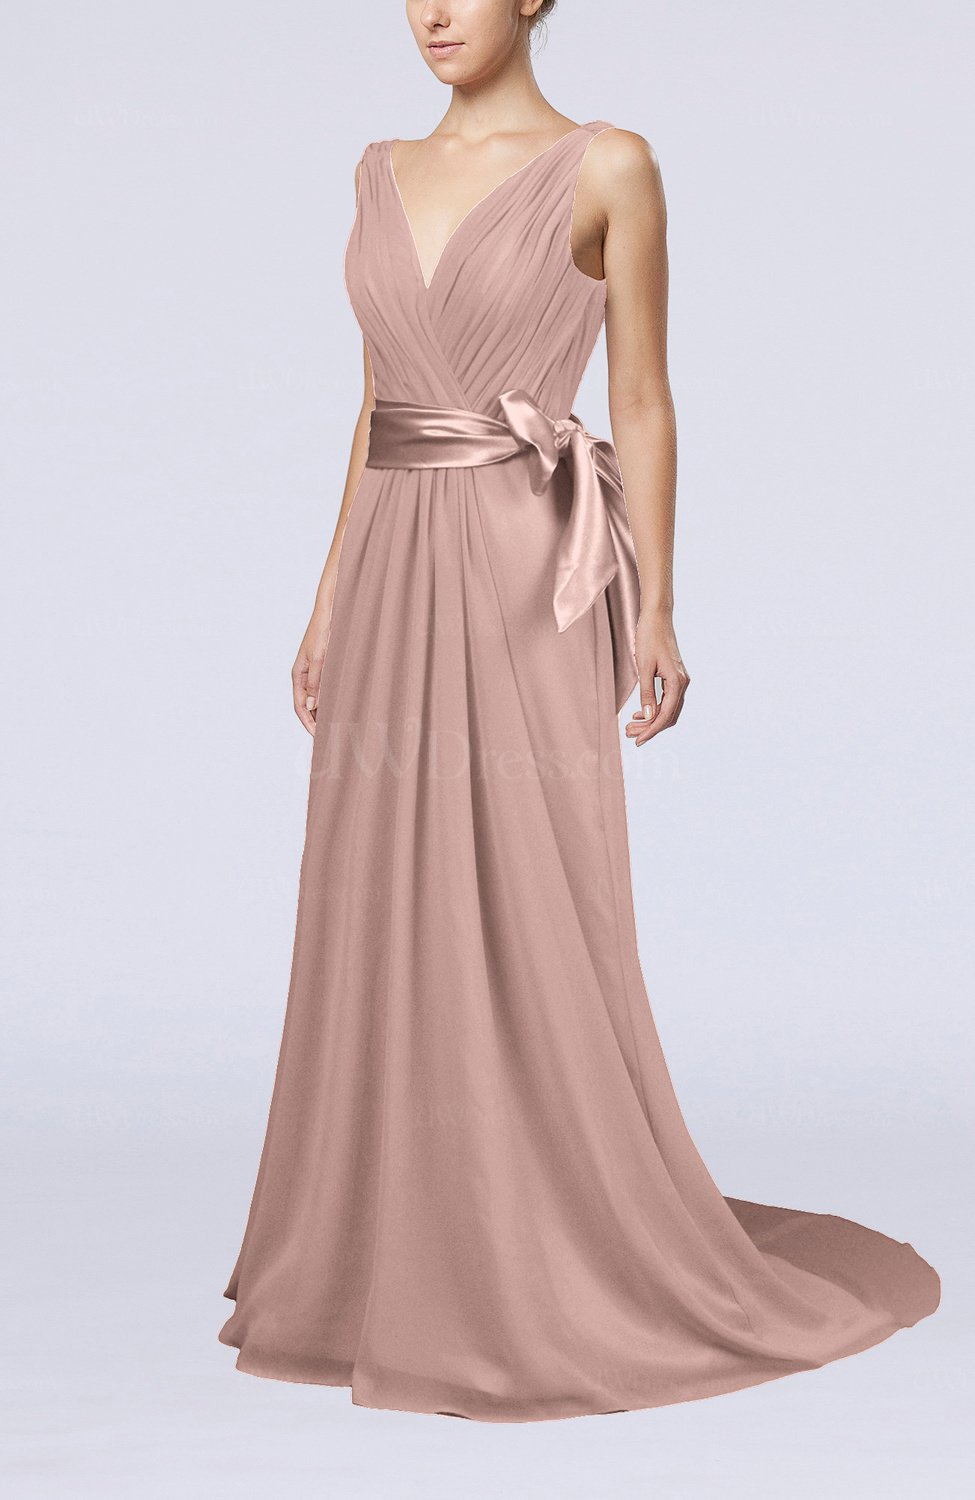 Dusty rose elegant a line v neck sleeveless chiffon ruching elegant a line v neck sleeveless chiffon ruching bridesmaid dresses ombrellifo Image collections